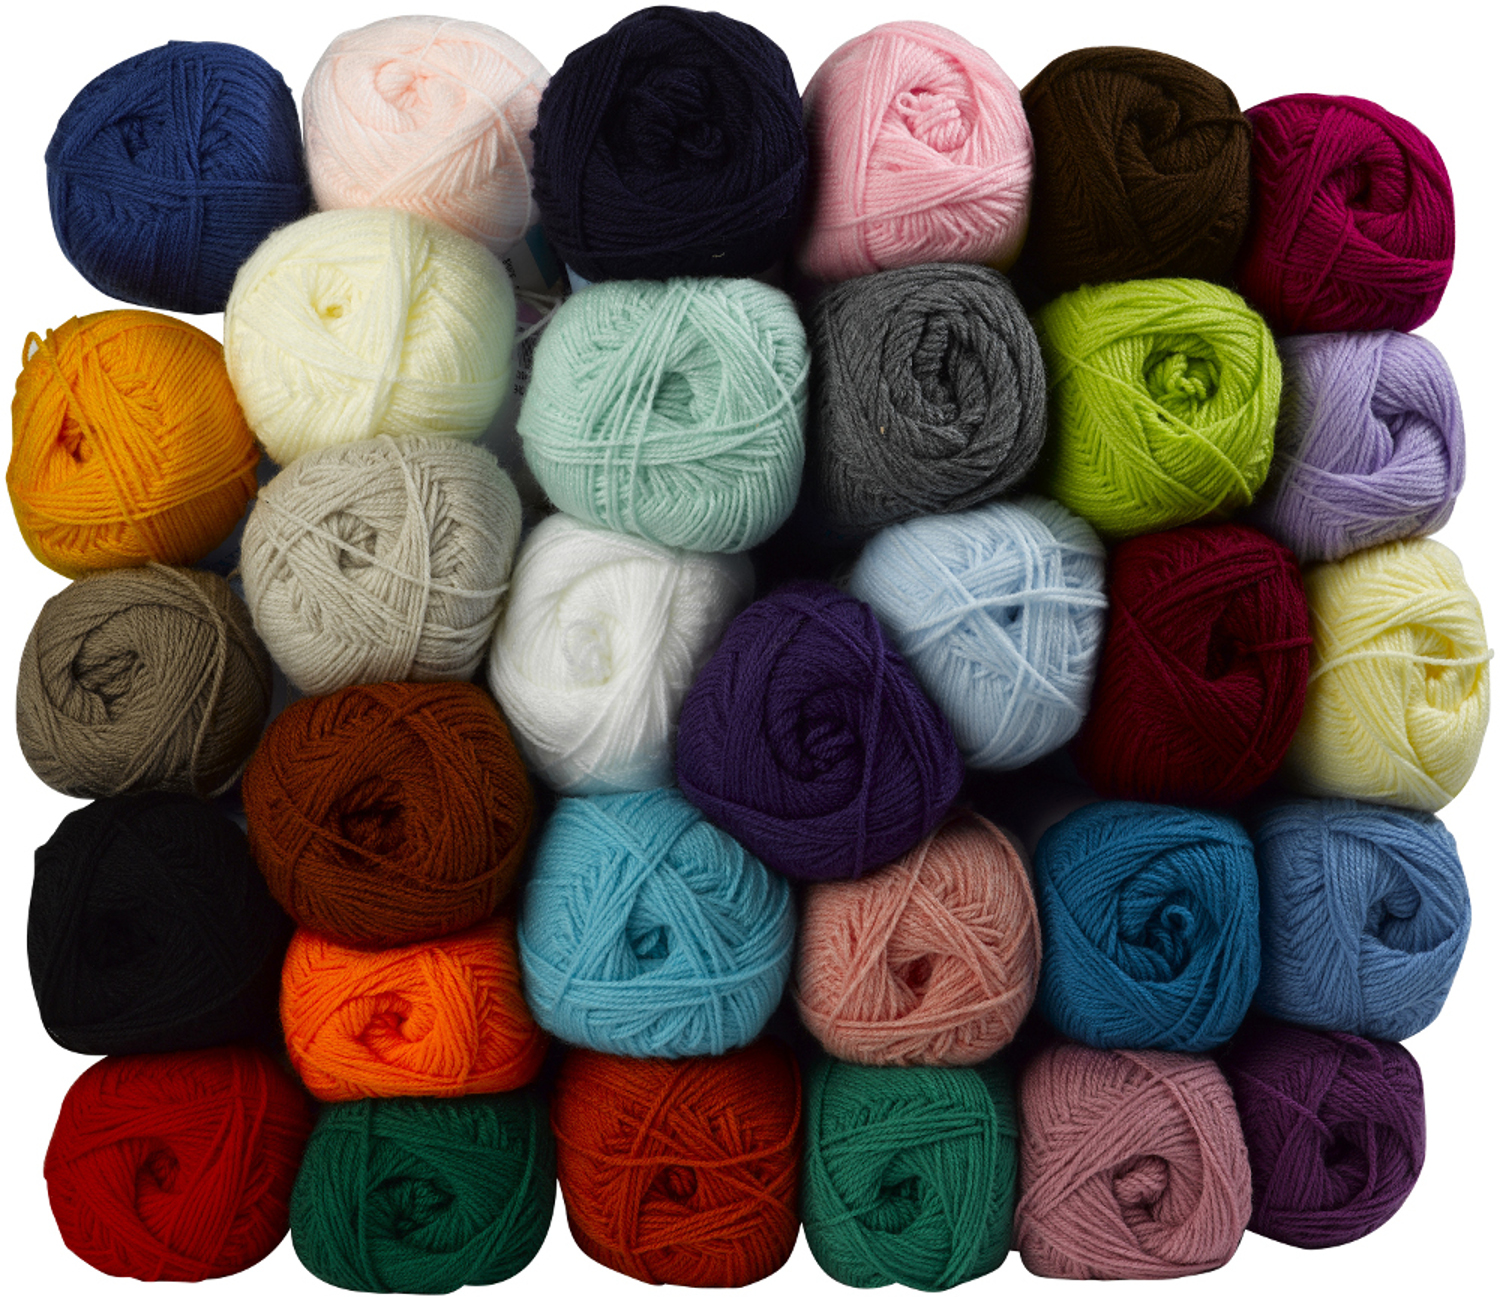 Acrylic Yarn : ... Value DK Machine Washable Yarn 100 Acrylic Double Knitting Wool eBay